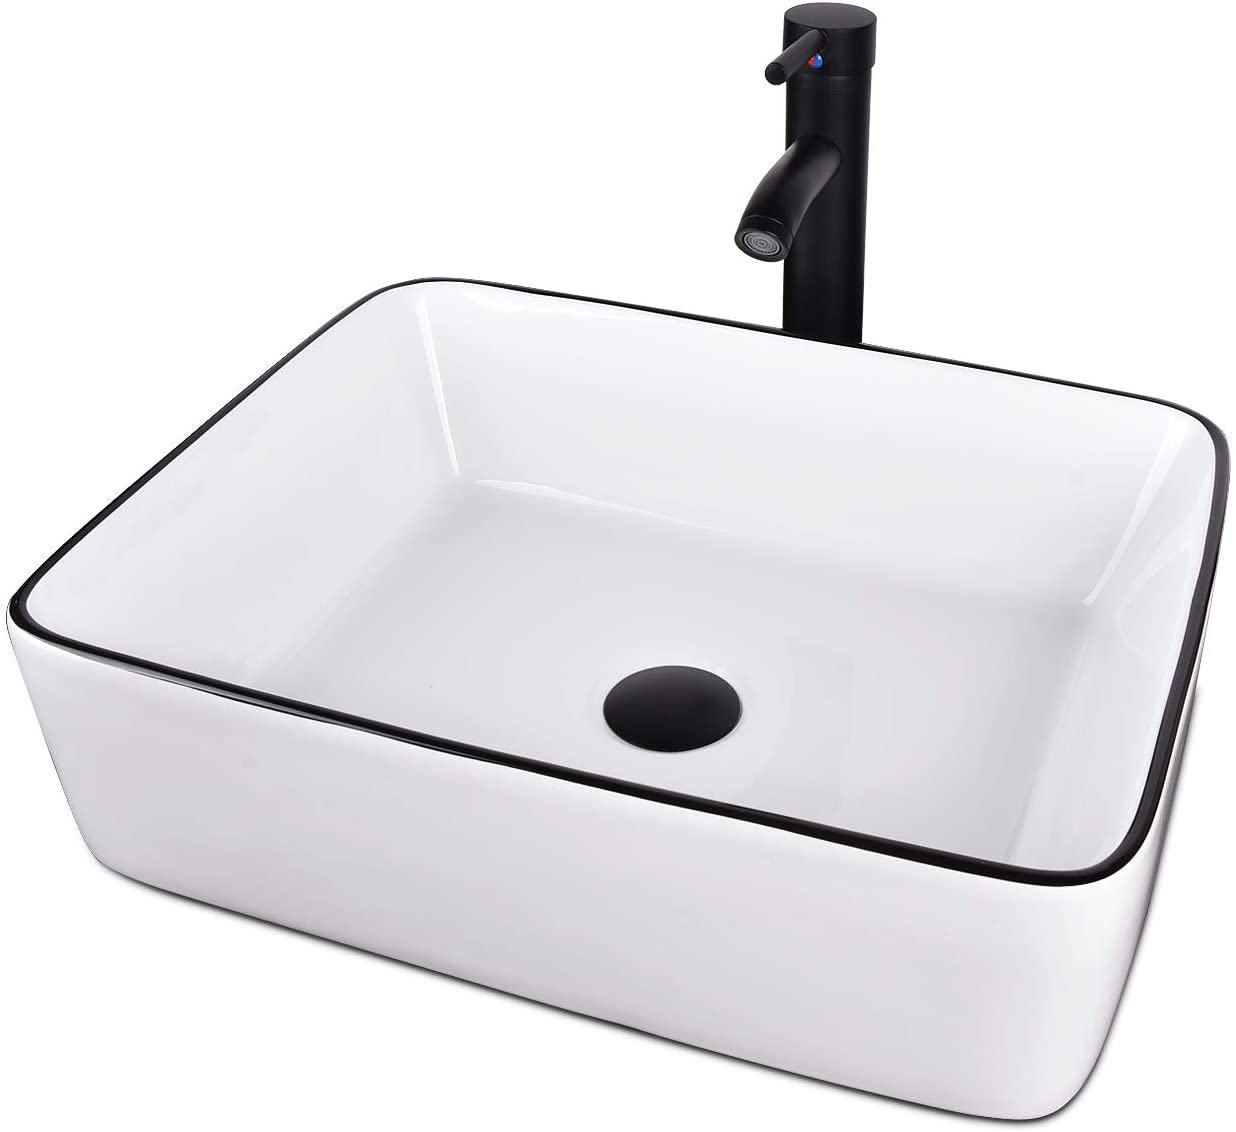 Buy White Ceramic Bathroom Sink Above Counter Porcelain Vessel Sink With Black Faucet And Pop Up Drain Combo Rectangle Online In Turkey B0828x97km